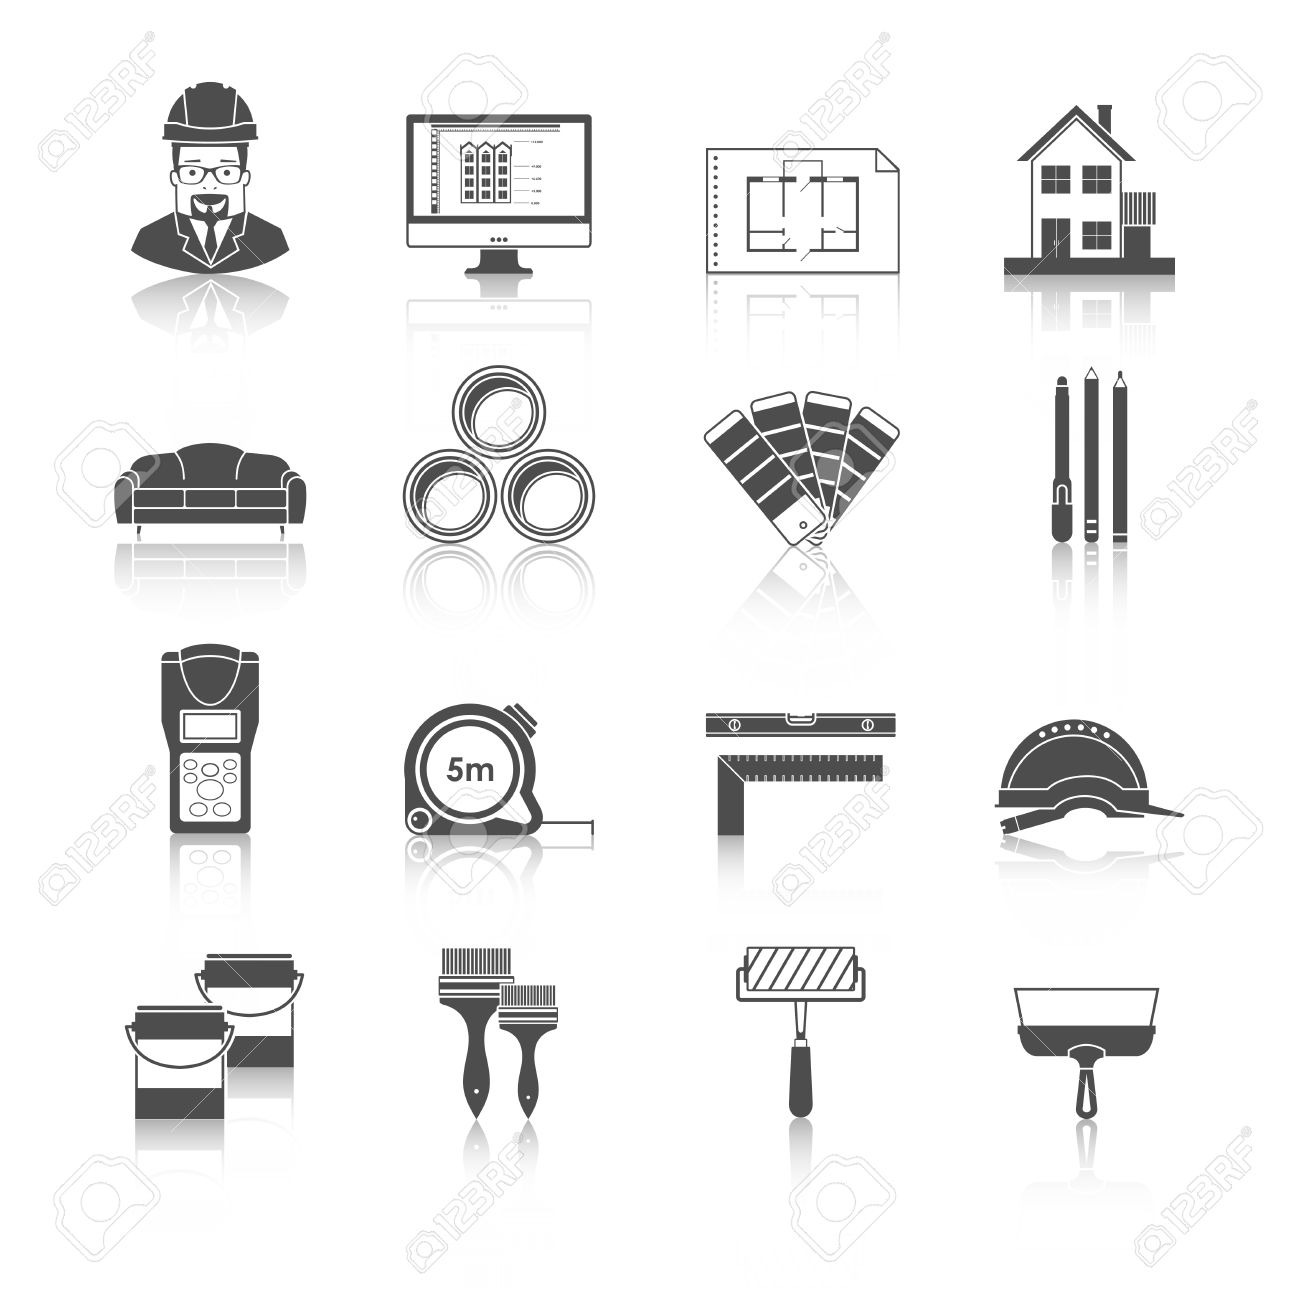 Interior Design And Repairs Vector Black Icons Download